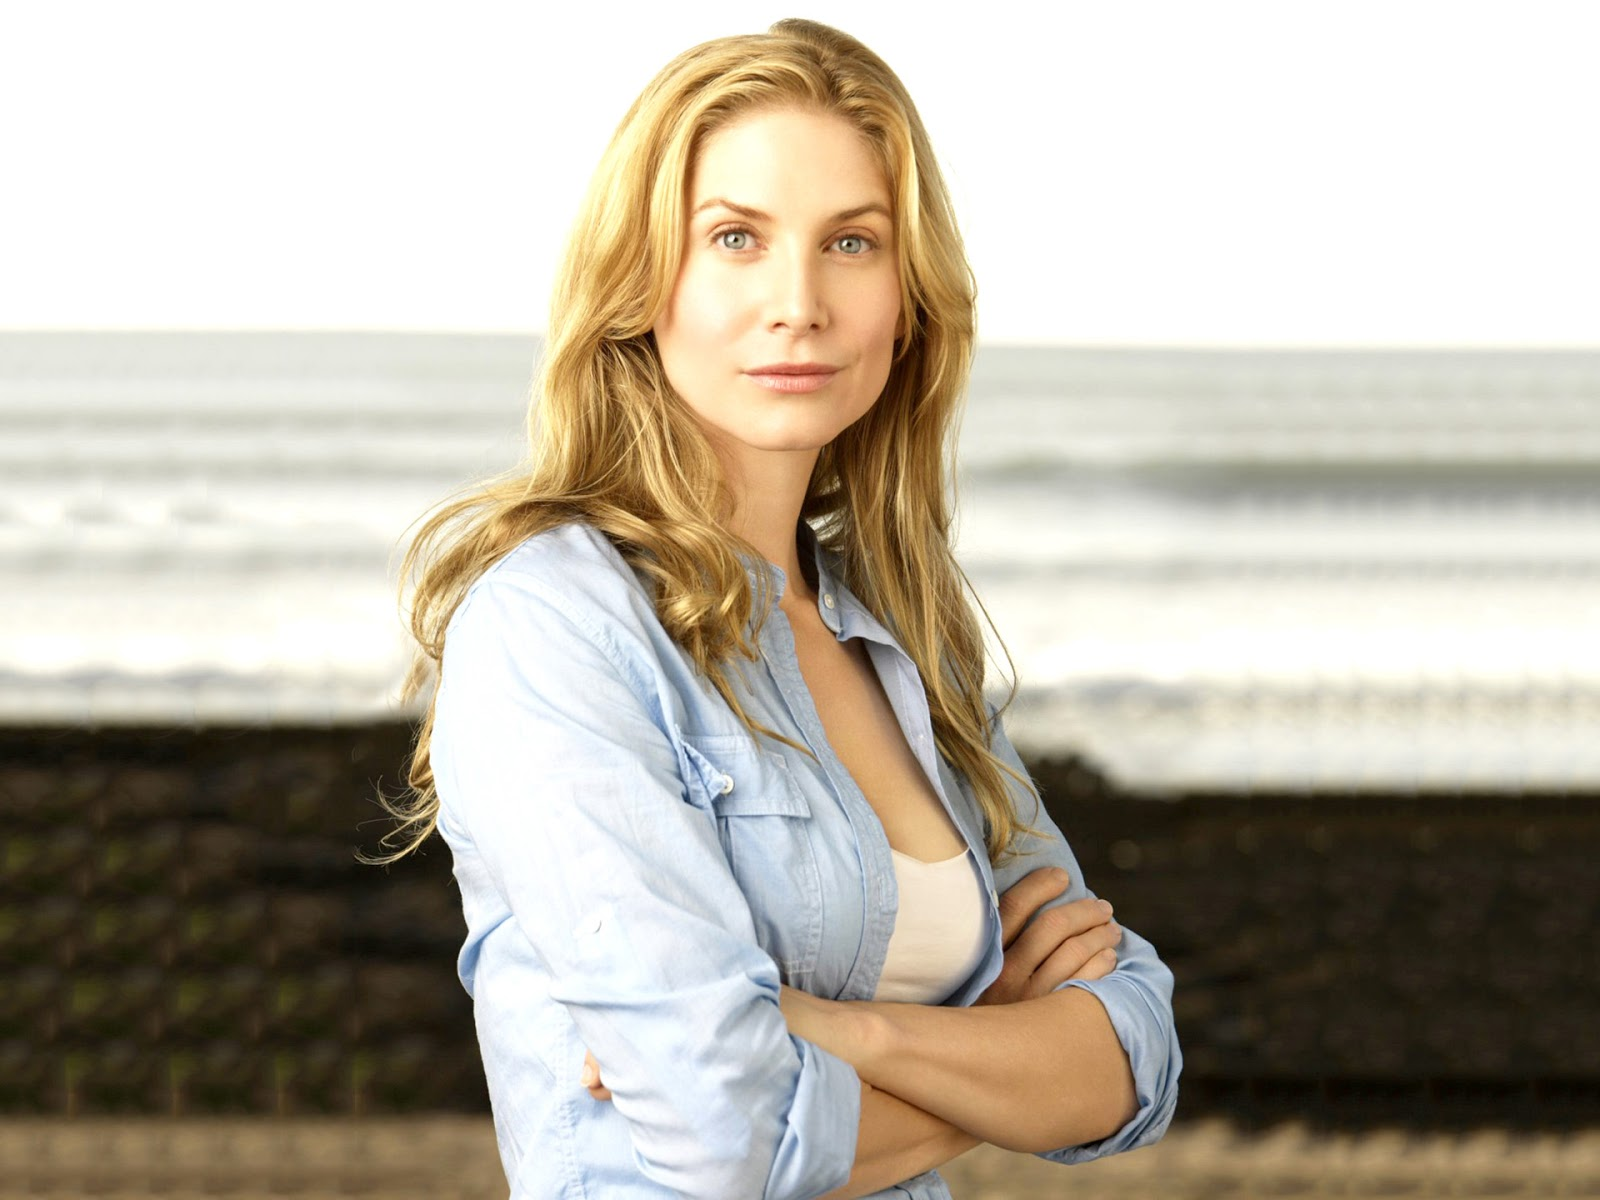 elizabeth mitchell computer hd - photo #24